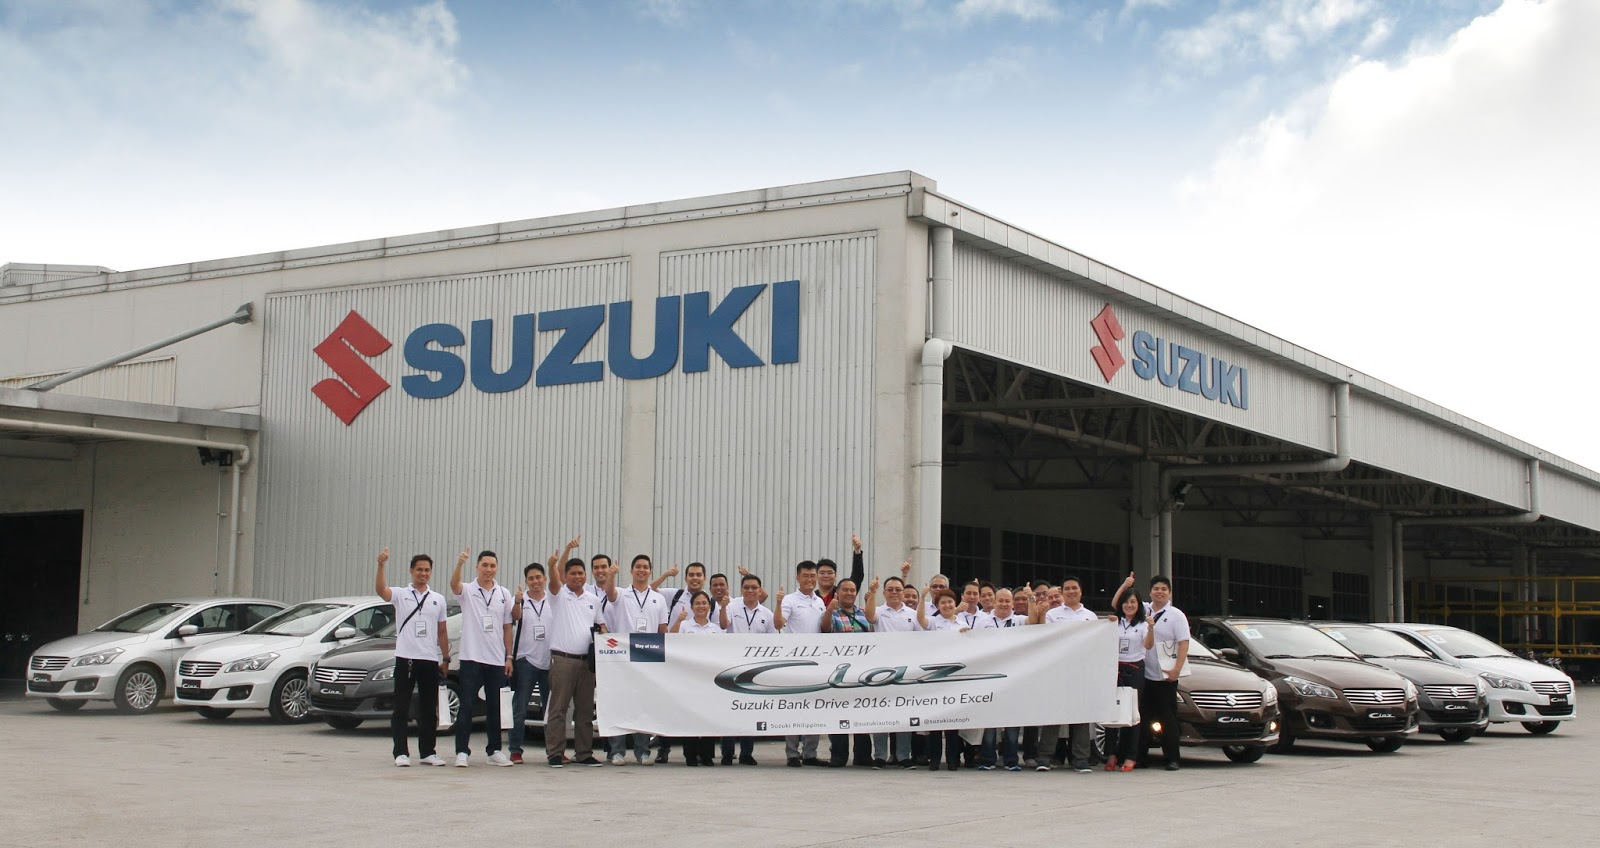 Suzuki Bank Test Drive